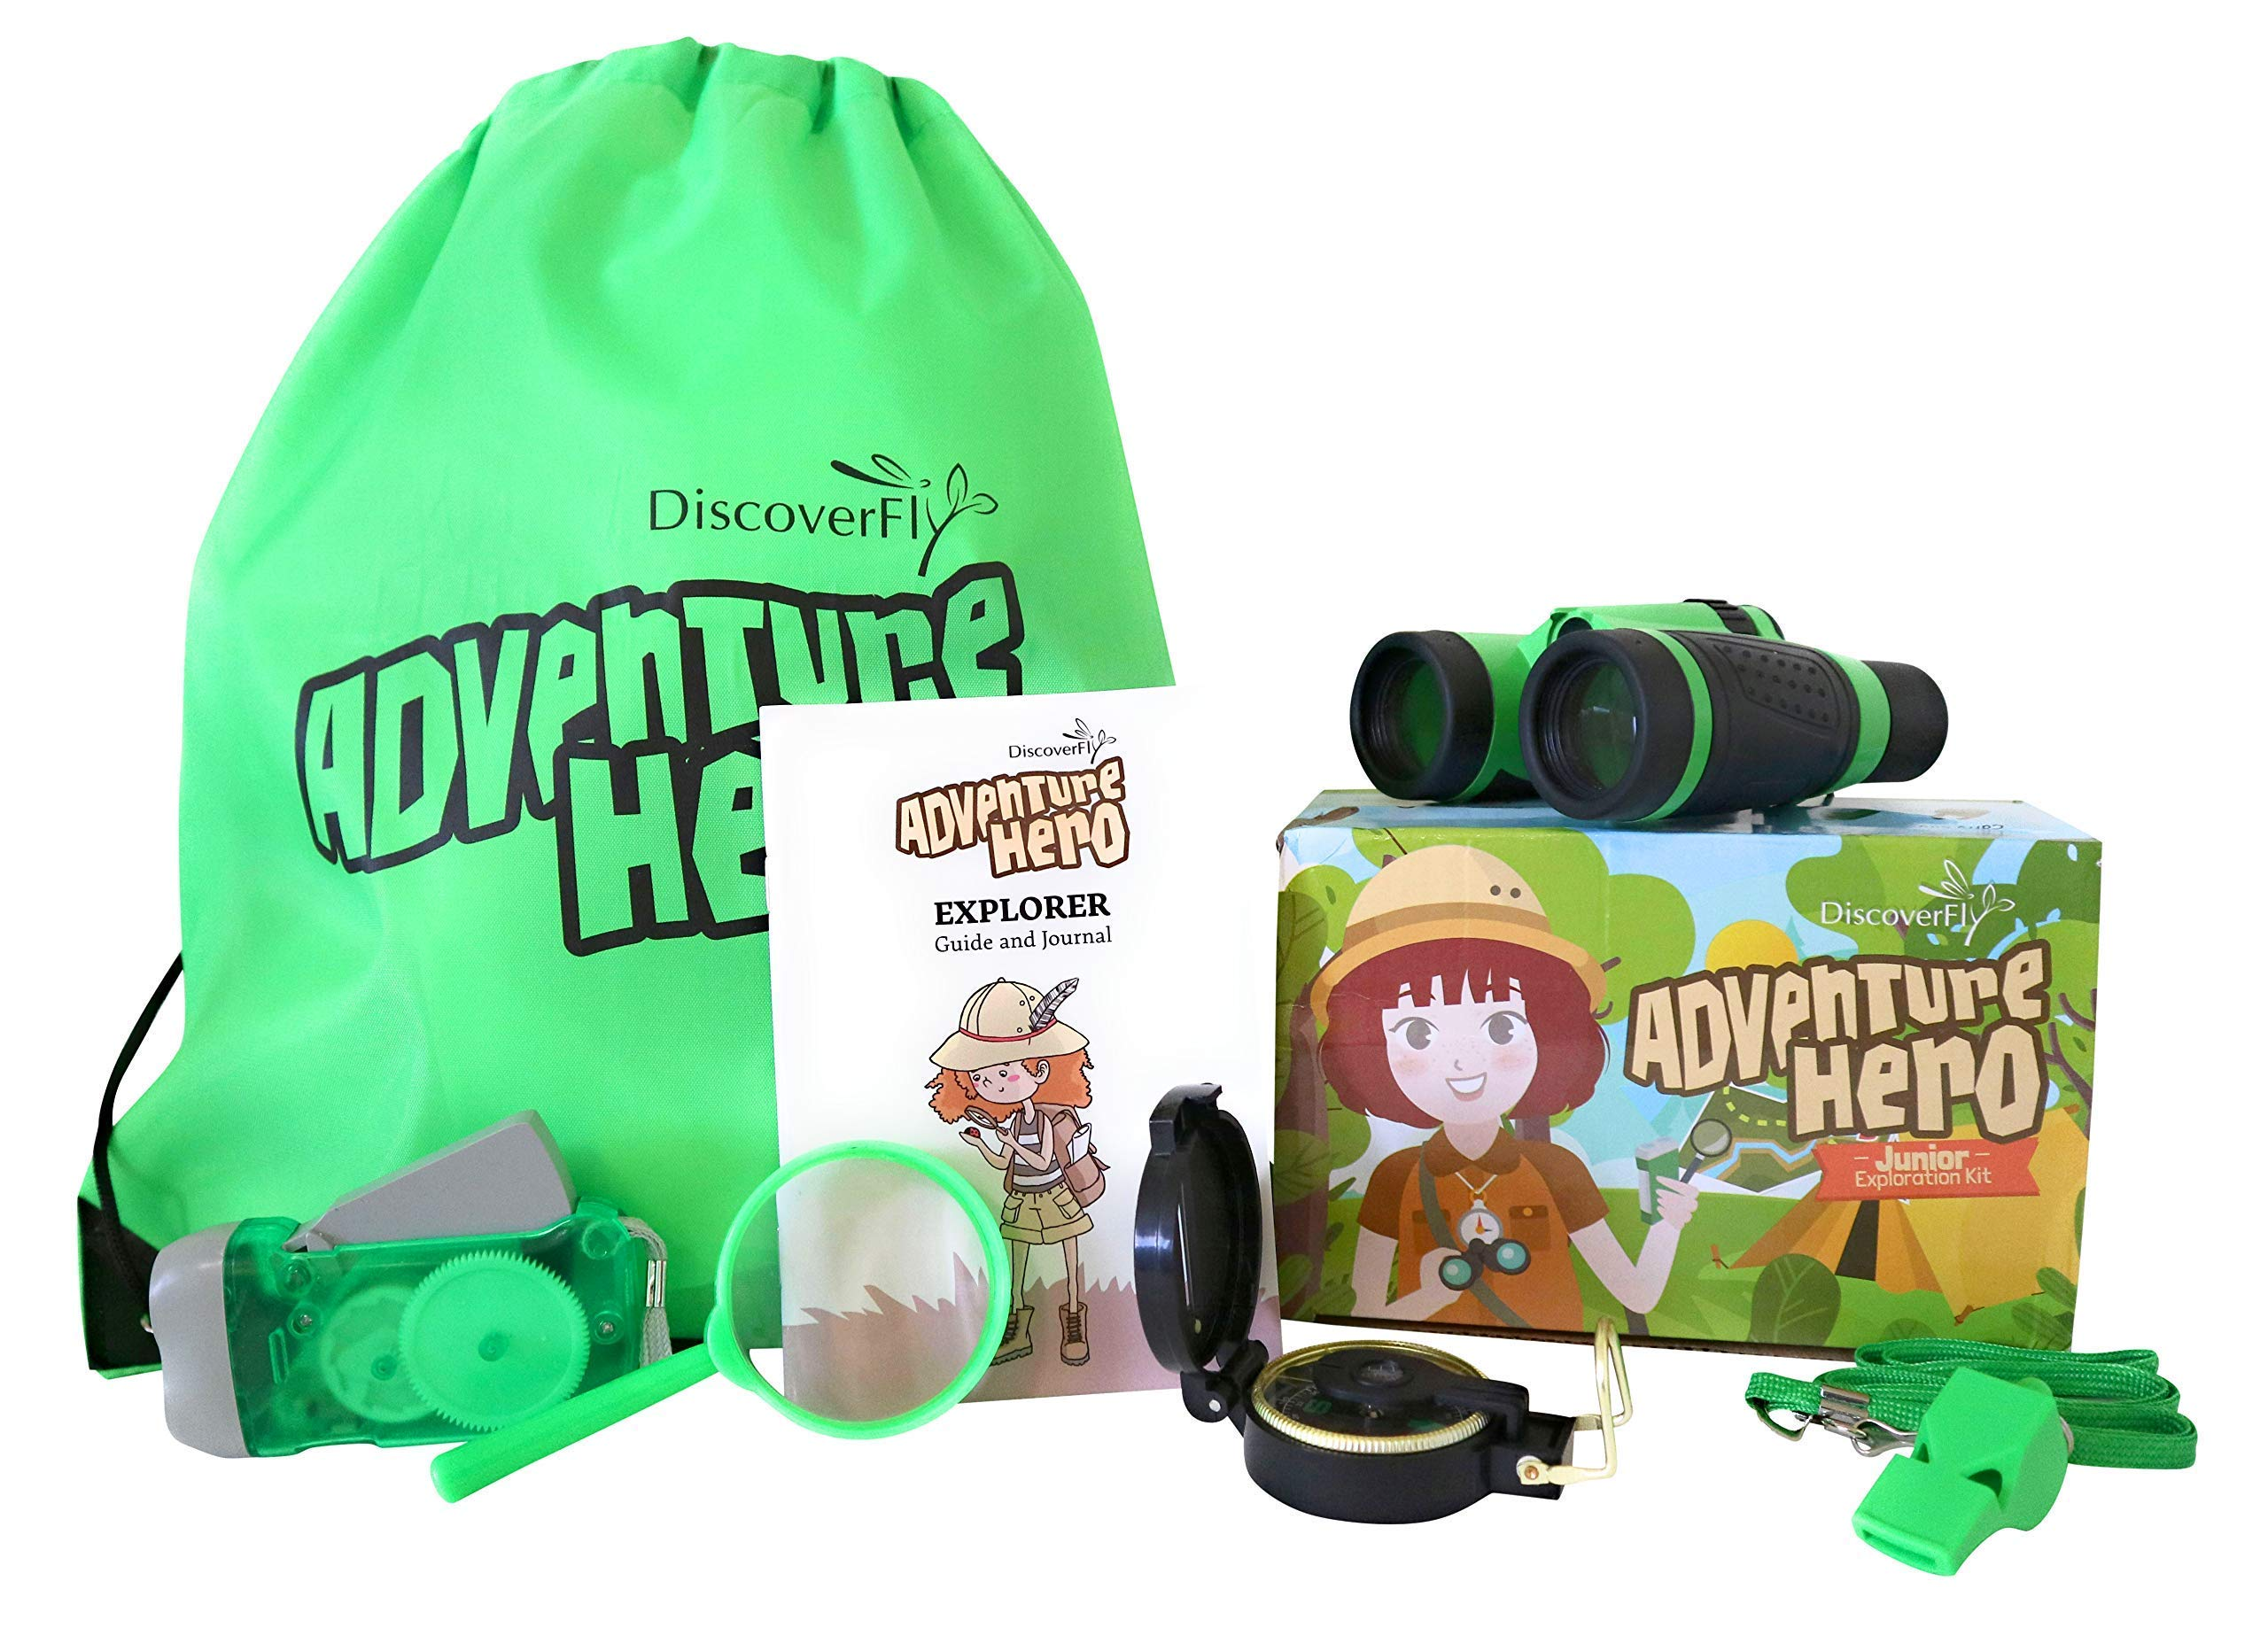 Discoverfly Outdoor Explorer Kit for Kids - Toy Binoculars, Magnifying Glass, Flashlight, Compass, Whistle, Backyard Bugs Book - Perfect Set for Boys and Girls Nature Exploration